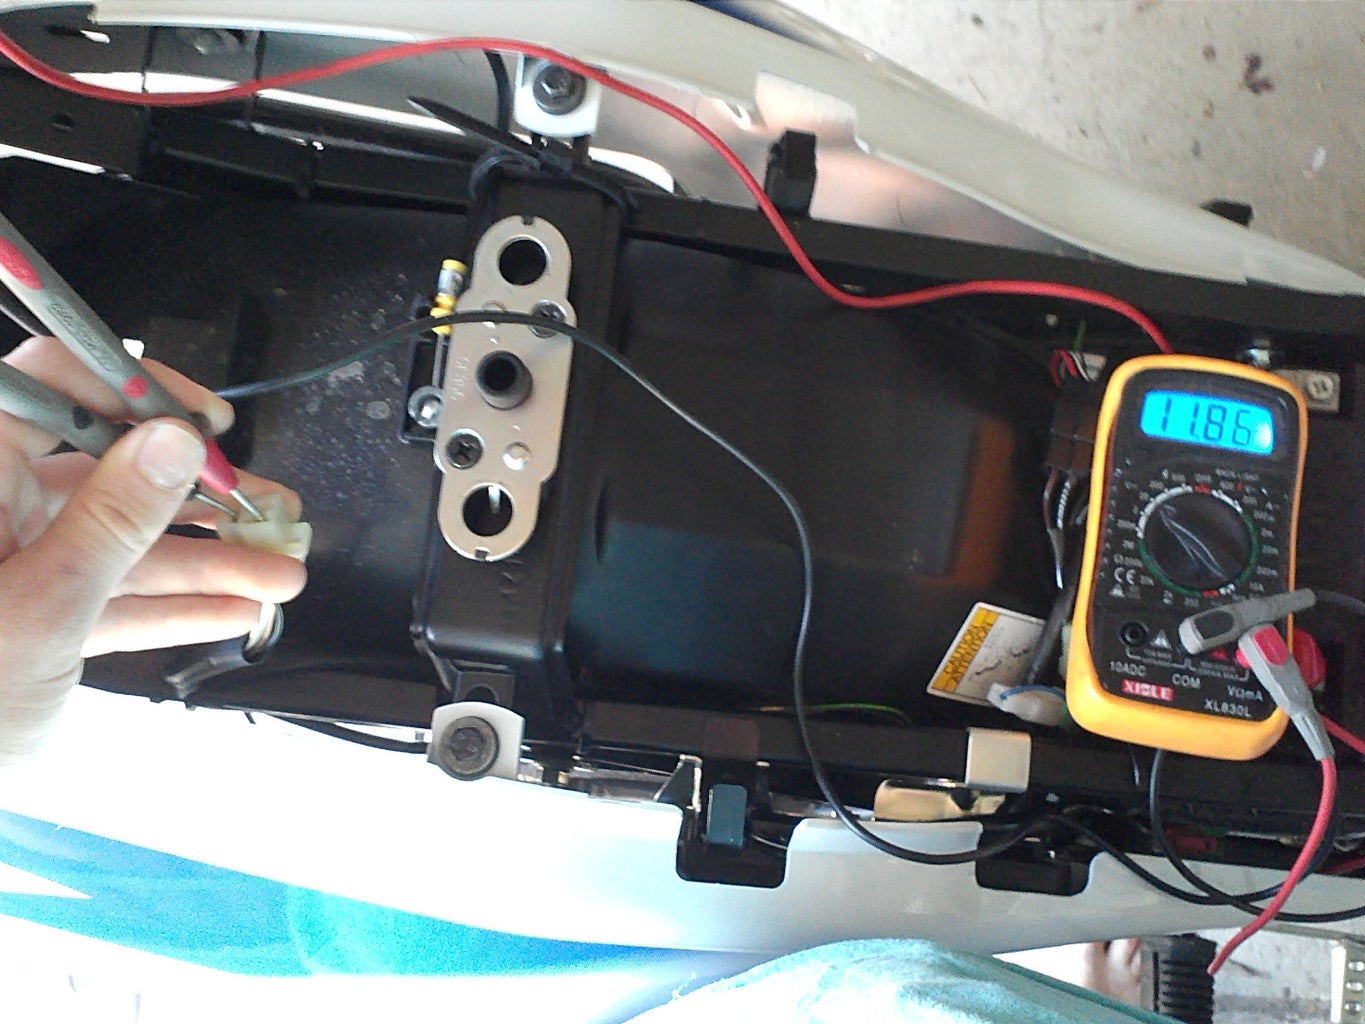 Install a Switched 12v Power Outlet Onto Your Motorbike - Locating Our Switched Lines